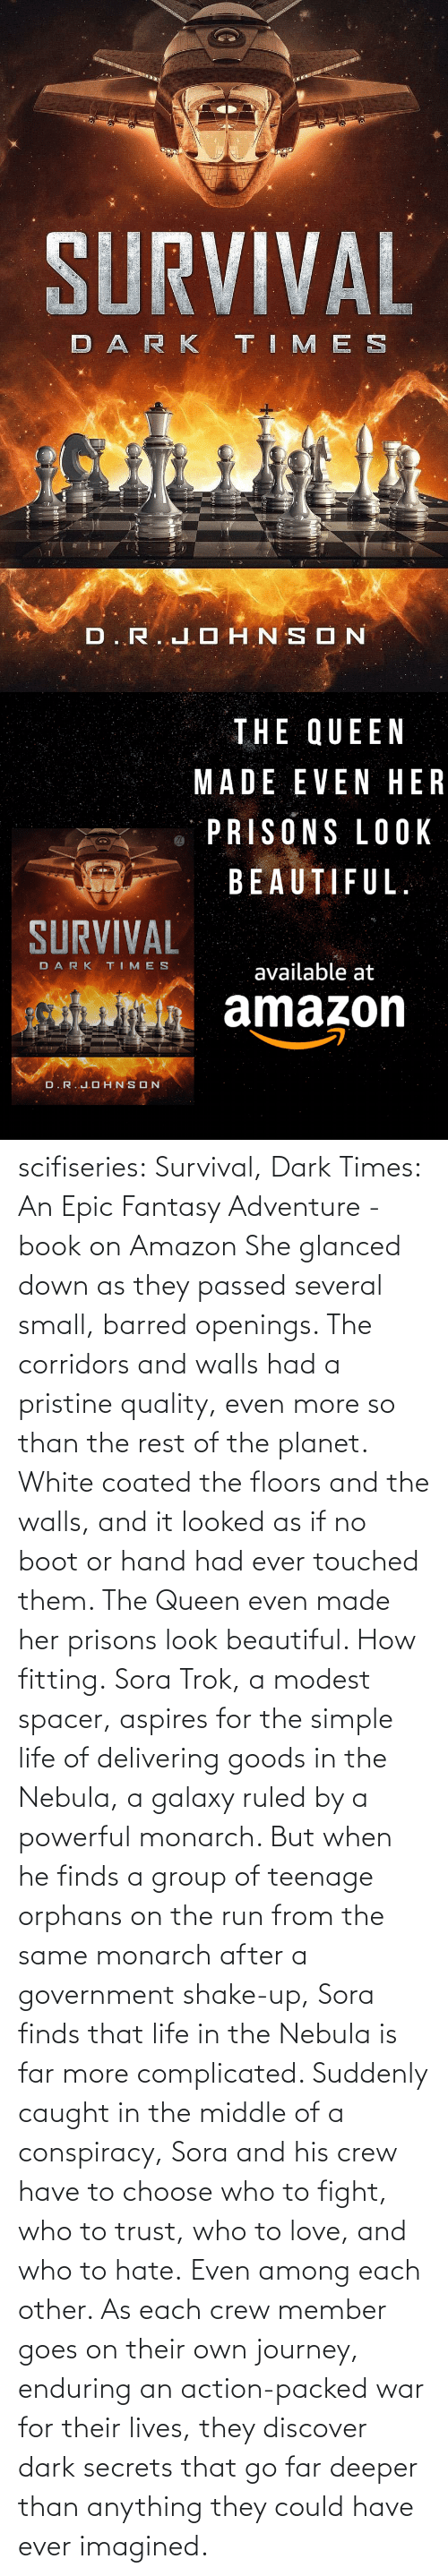 simple: scifiseries: Survival, Dark Times: An Epic Fantasy Adventure - book on Amazon  She glanced down as they  passed several small, barred openings. The corridors and walls had a  pristine quality, even more so than the rest of the planet. White coated  the floors and the walls, and it looked as if no boot or hand had ever  touched them.  The Queen even made her prisons look beautiful.  How fitting. Sora  Trok, a modest spacer, aspires for the simple life of delivering goods  in the Nebula, a galaxy ruled by a powerful monarch. But when he finds a  group of teenage orphans on the run from the same monarch after a  government shake-up, Sora finds that life in the Nebula is far more complicated.  Suddenly  caught in the middle of a conspiracy, Sora and his crew have to choose  who to fight, who to trust, who to love, and who to hate. Even among each other.  As  each crew member goes on their own journey, enduring an action-packed  war for their lives, they discover dark secrets that go far deeper than  anything they could have ever imagined.